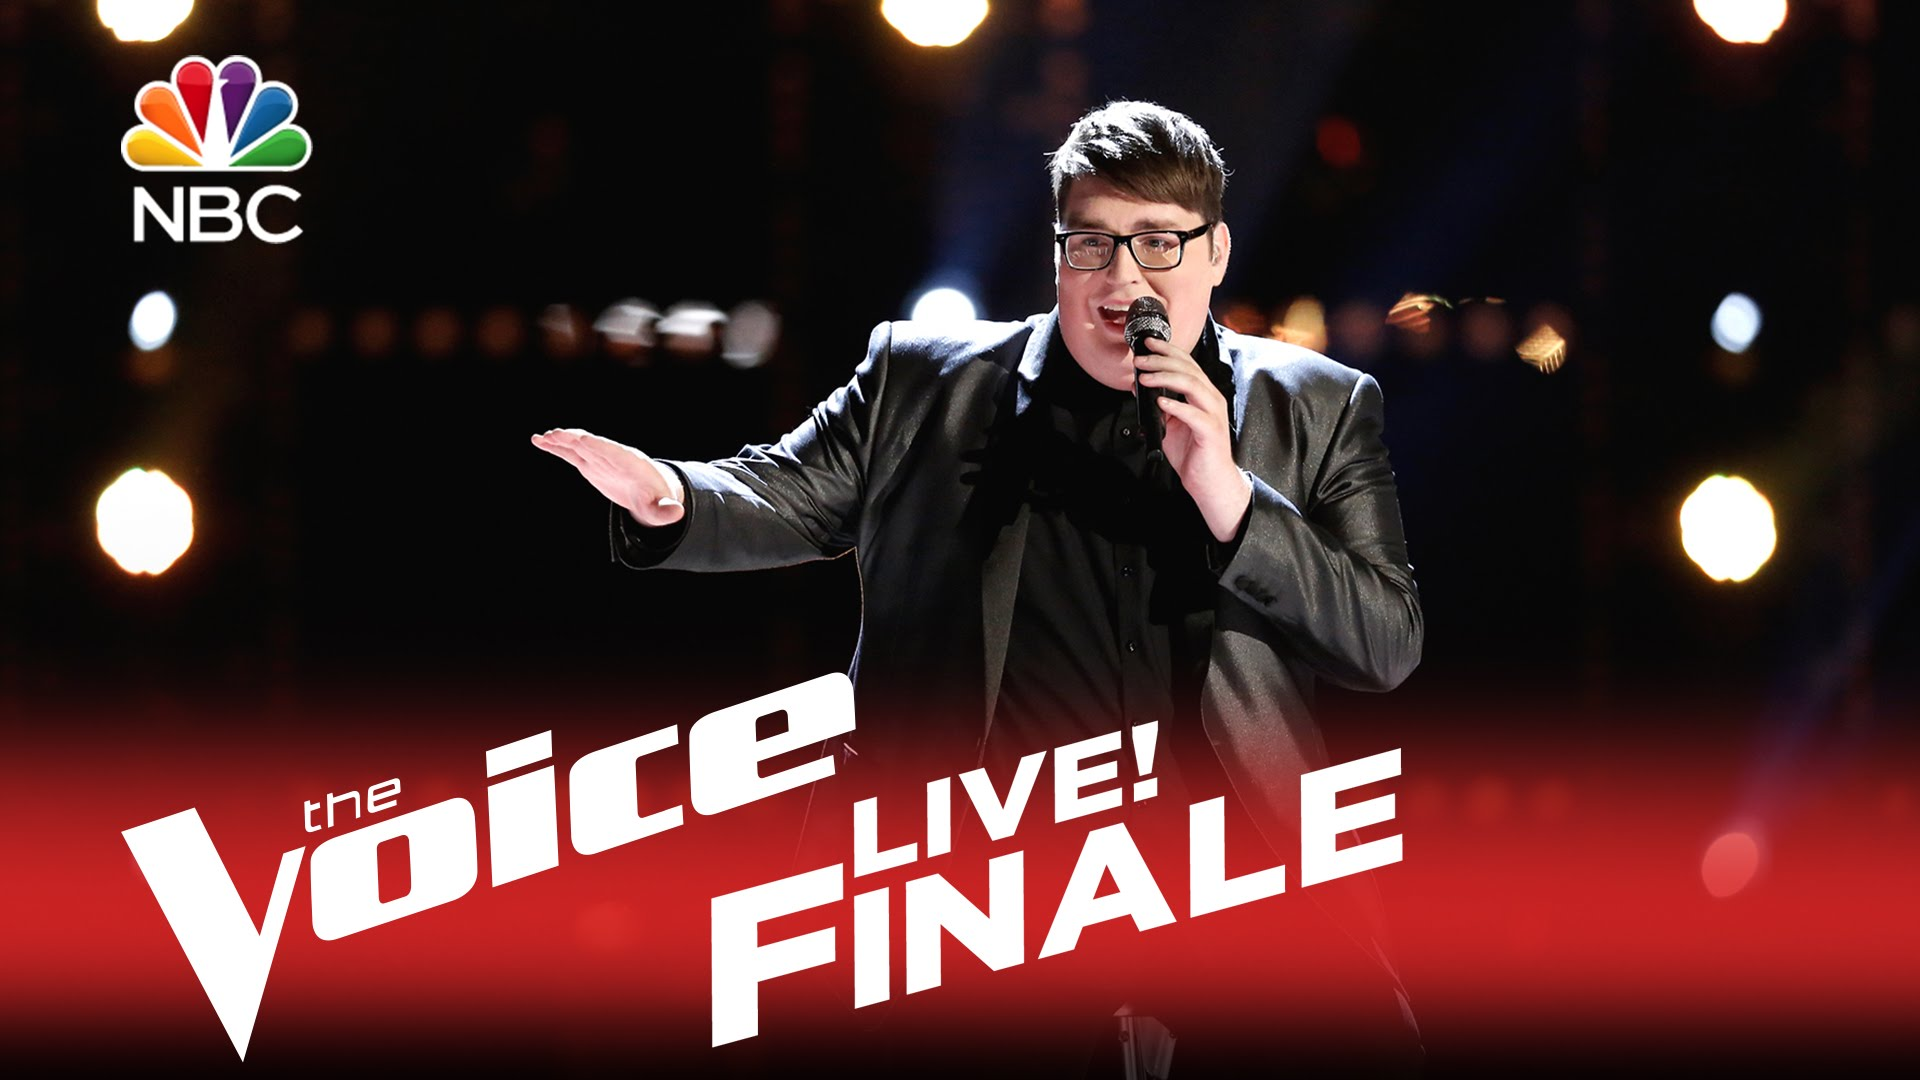 The Voice' winner Jordan Smith holds 4 iTunes Songs Chart Top 10